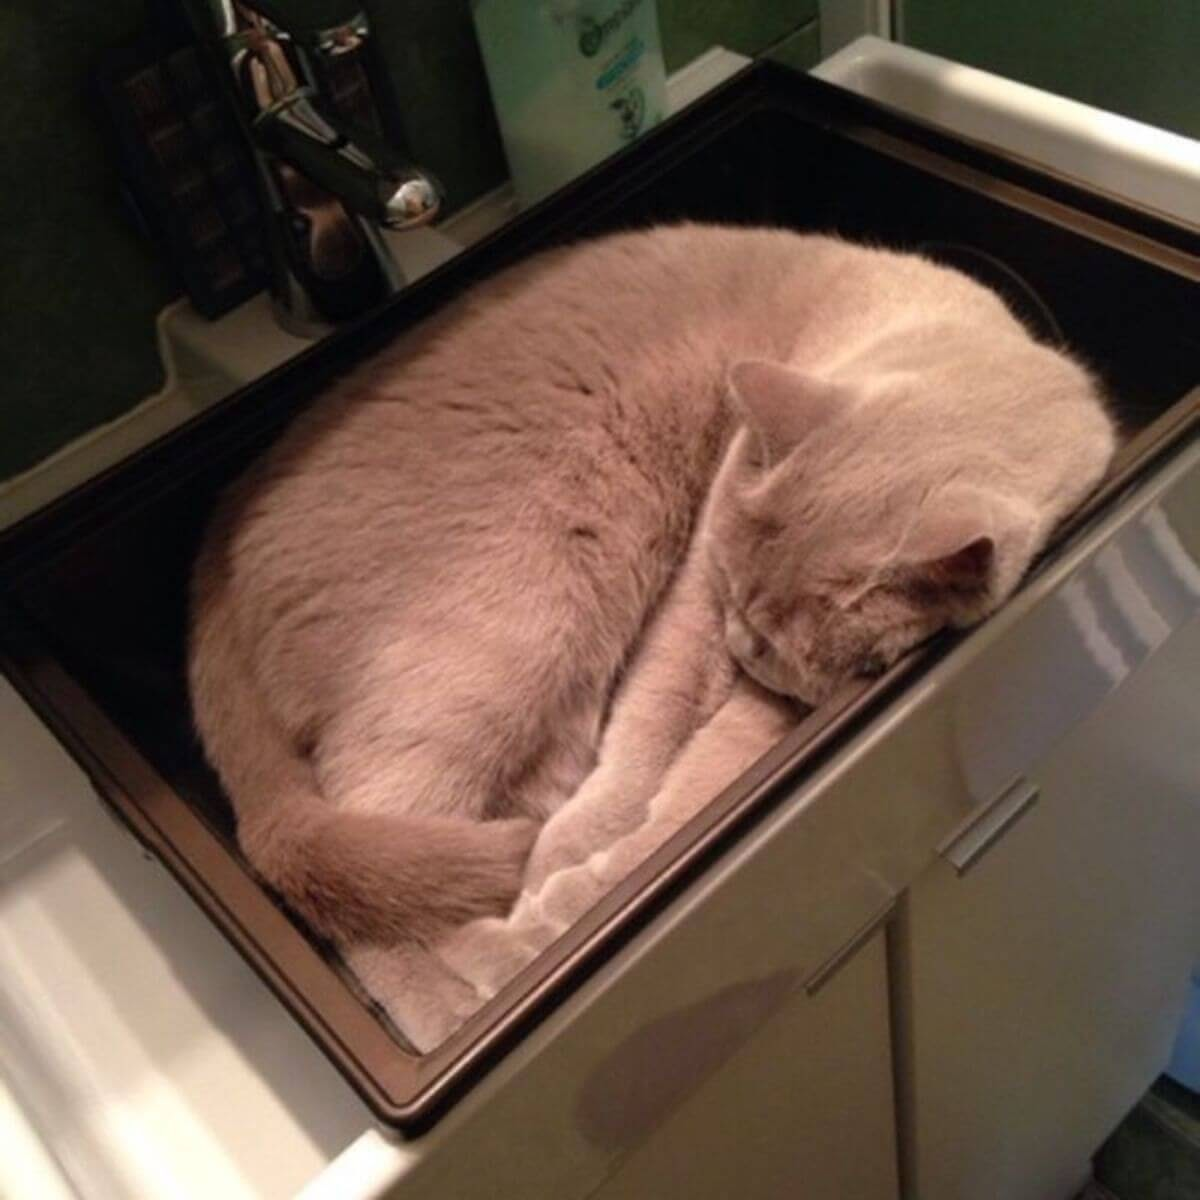 How long does a cat usually sleep for ?